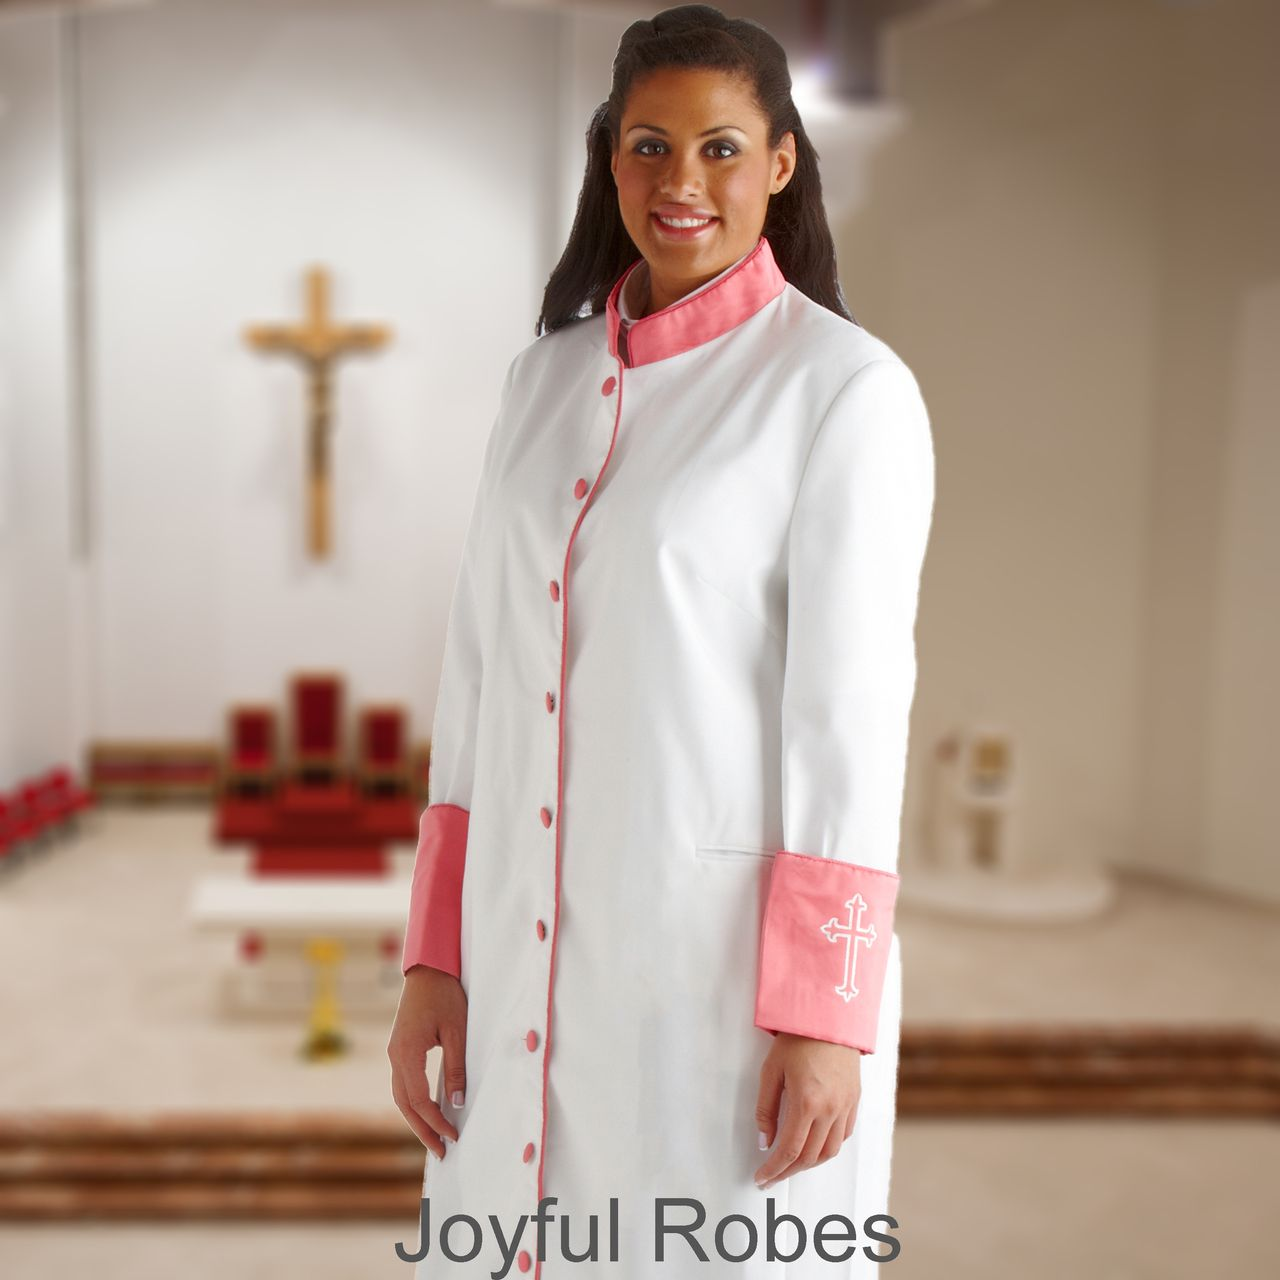 307 W. Women's Clergy/Pastor Robe - White/Rose Cuff